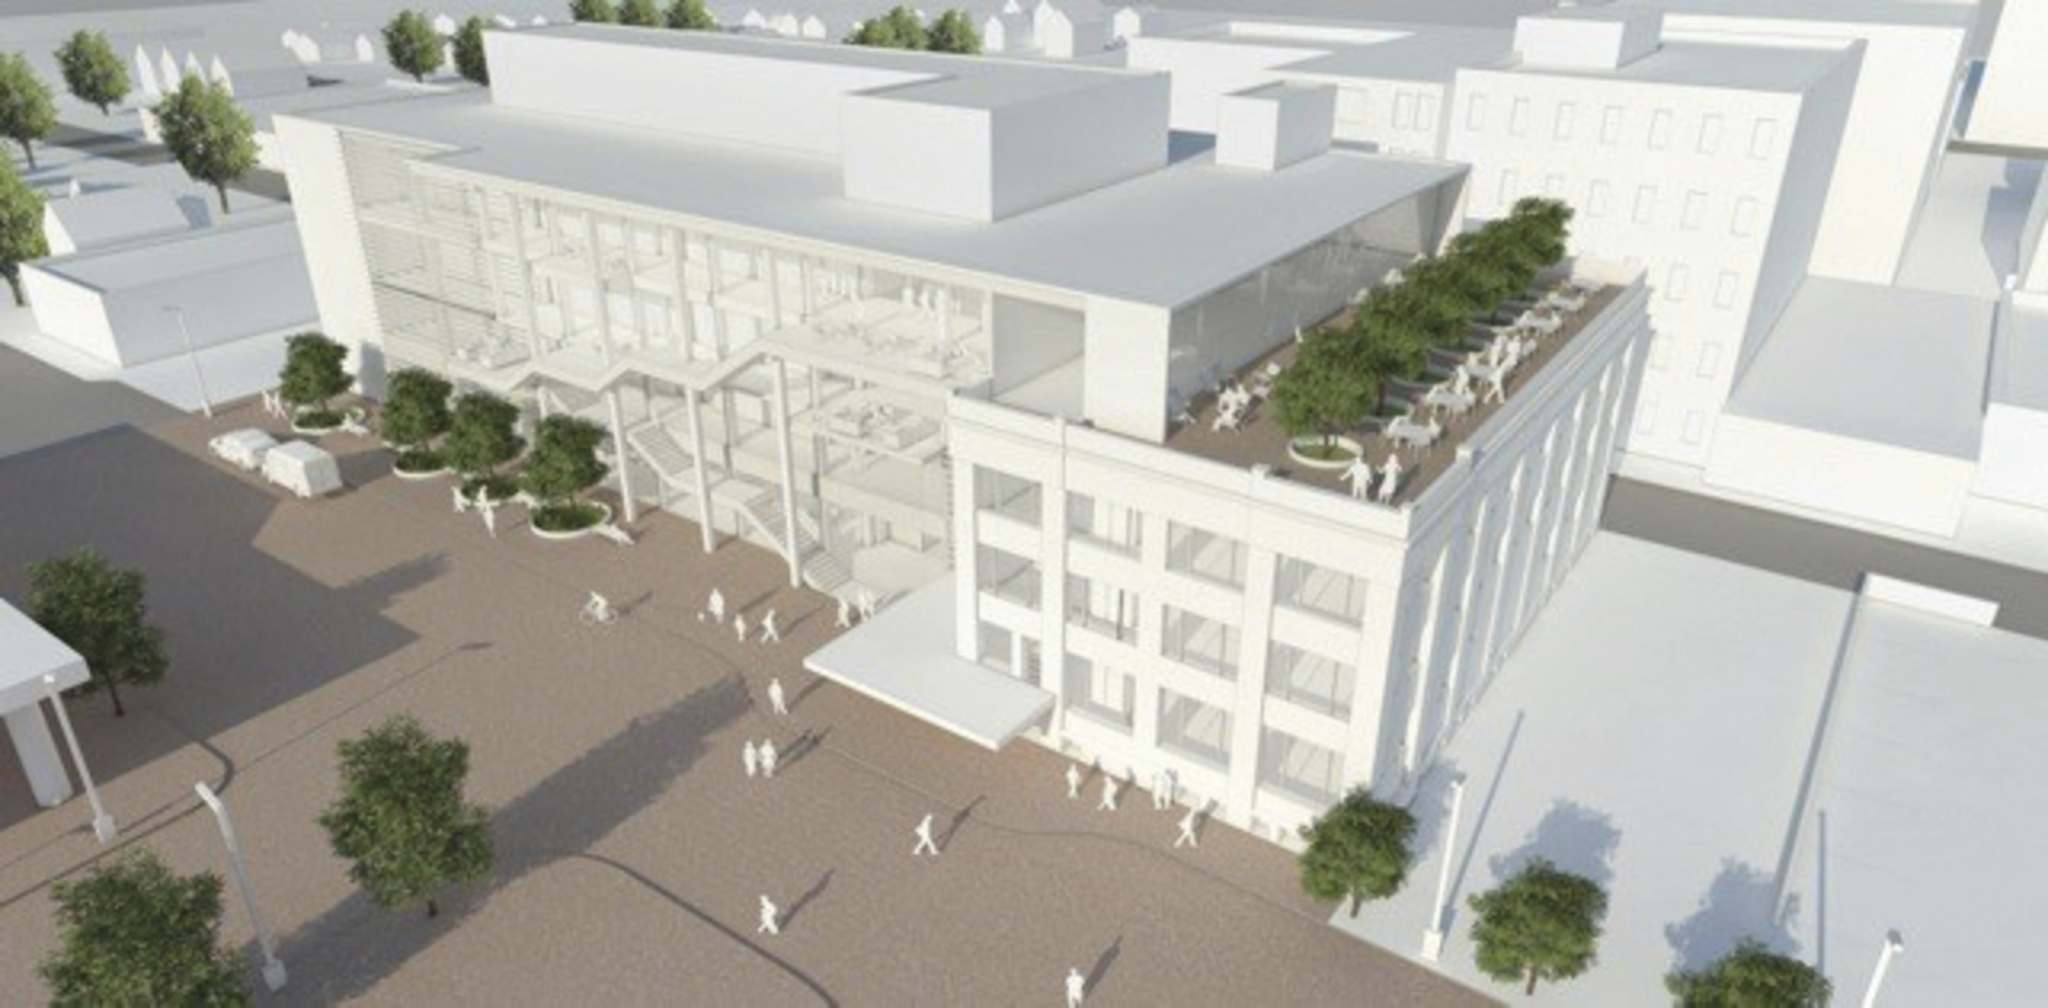 Rendering of proposed Red River College expansion. (Supplied)</p>